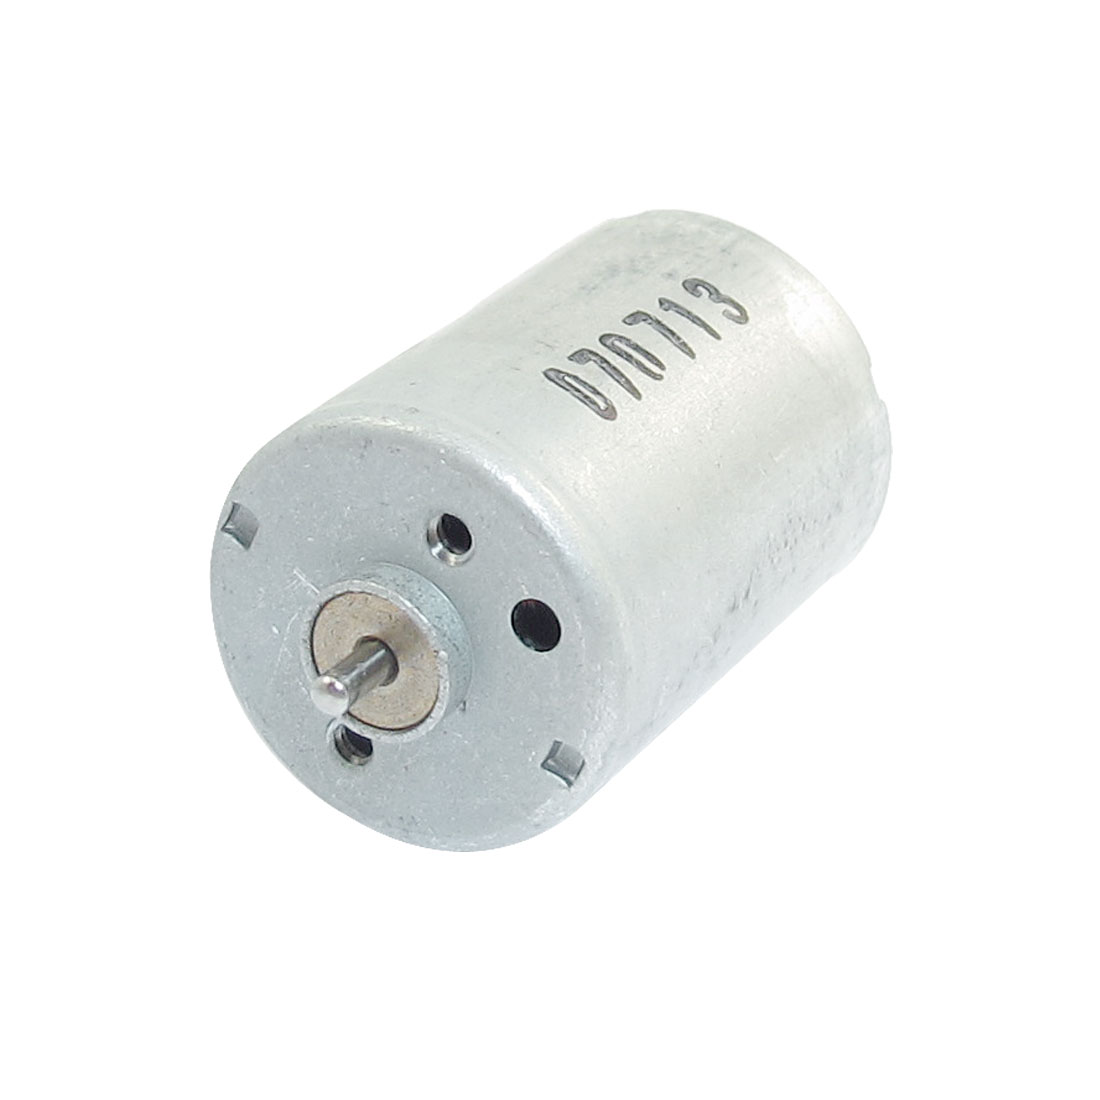 11000-23000RPM 3-6V High Torque Cylinder Electric Mini DC Motor